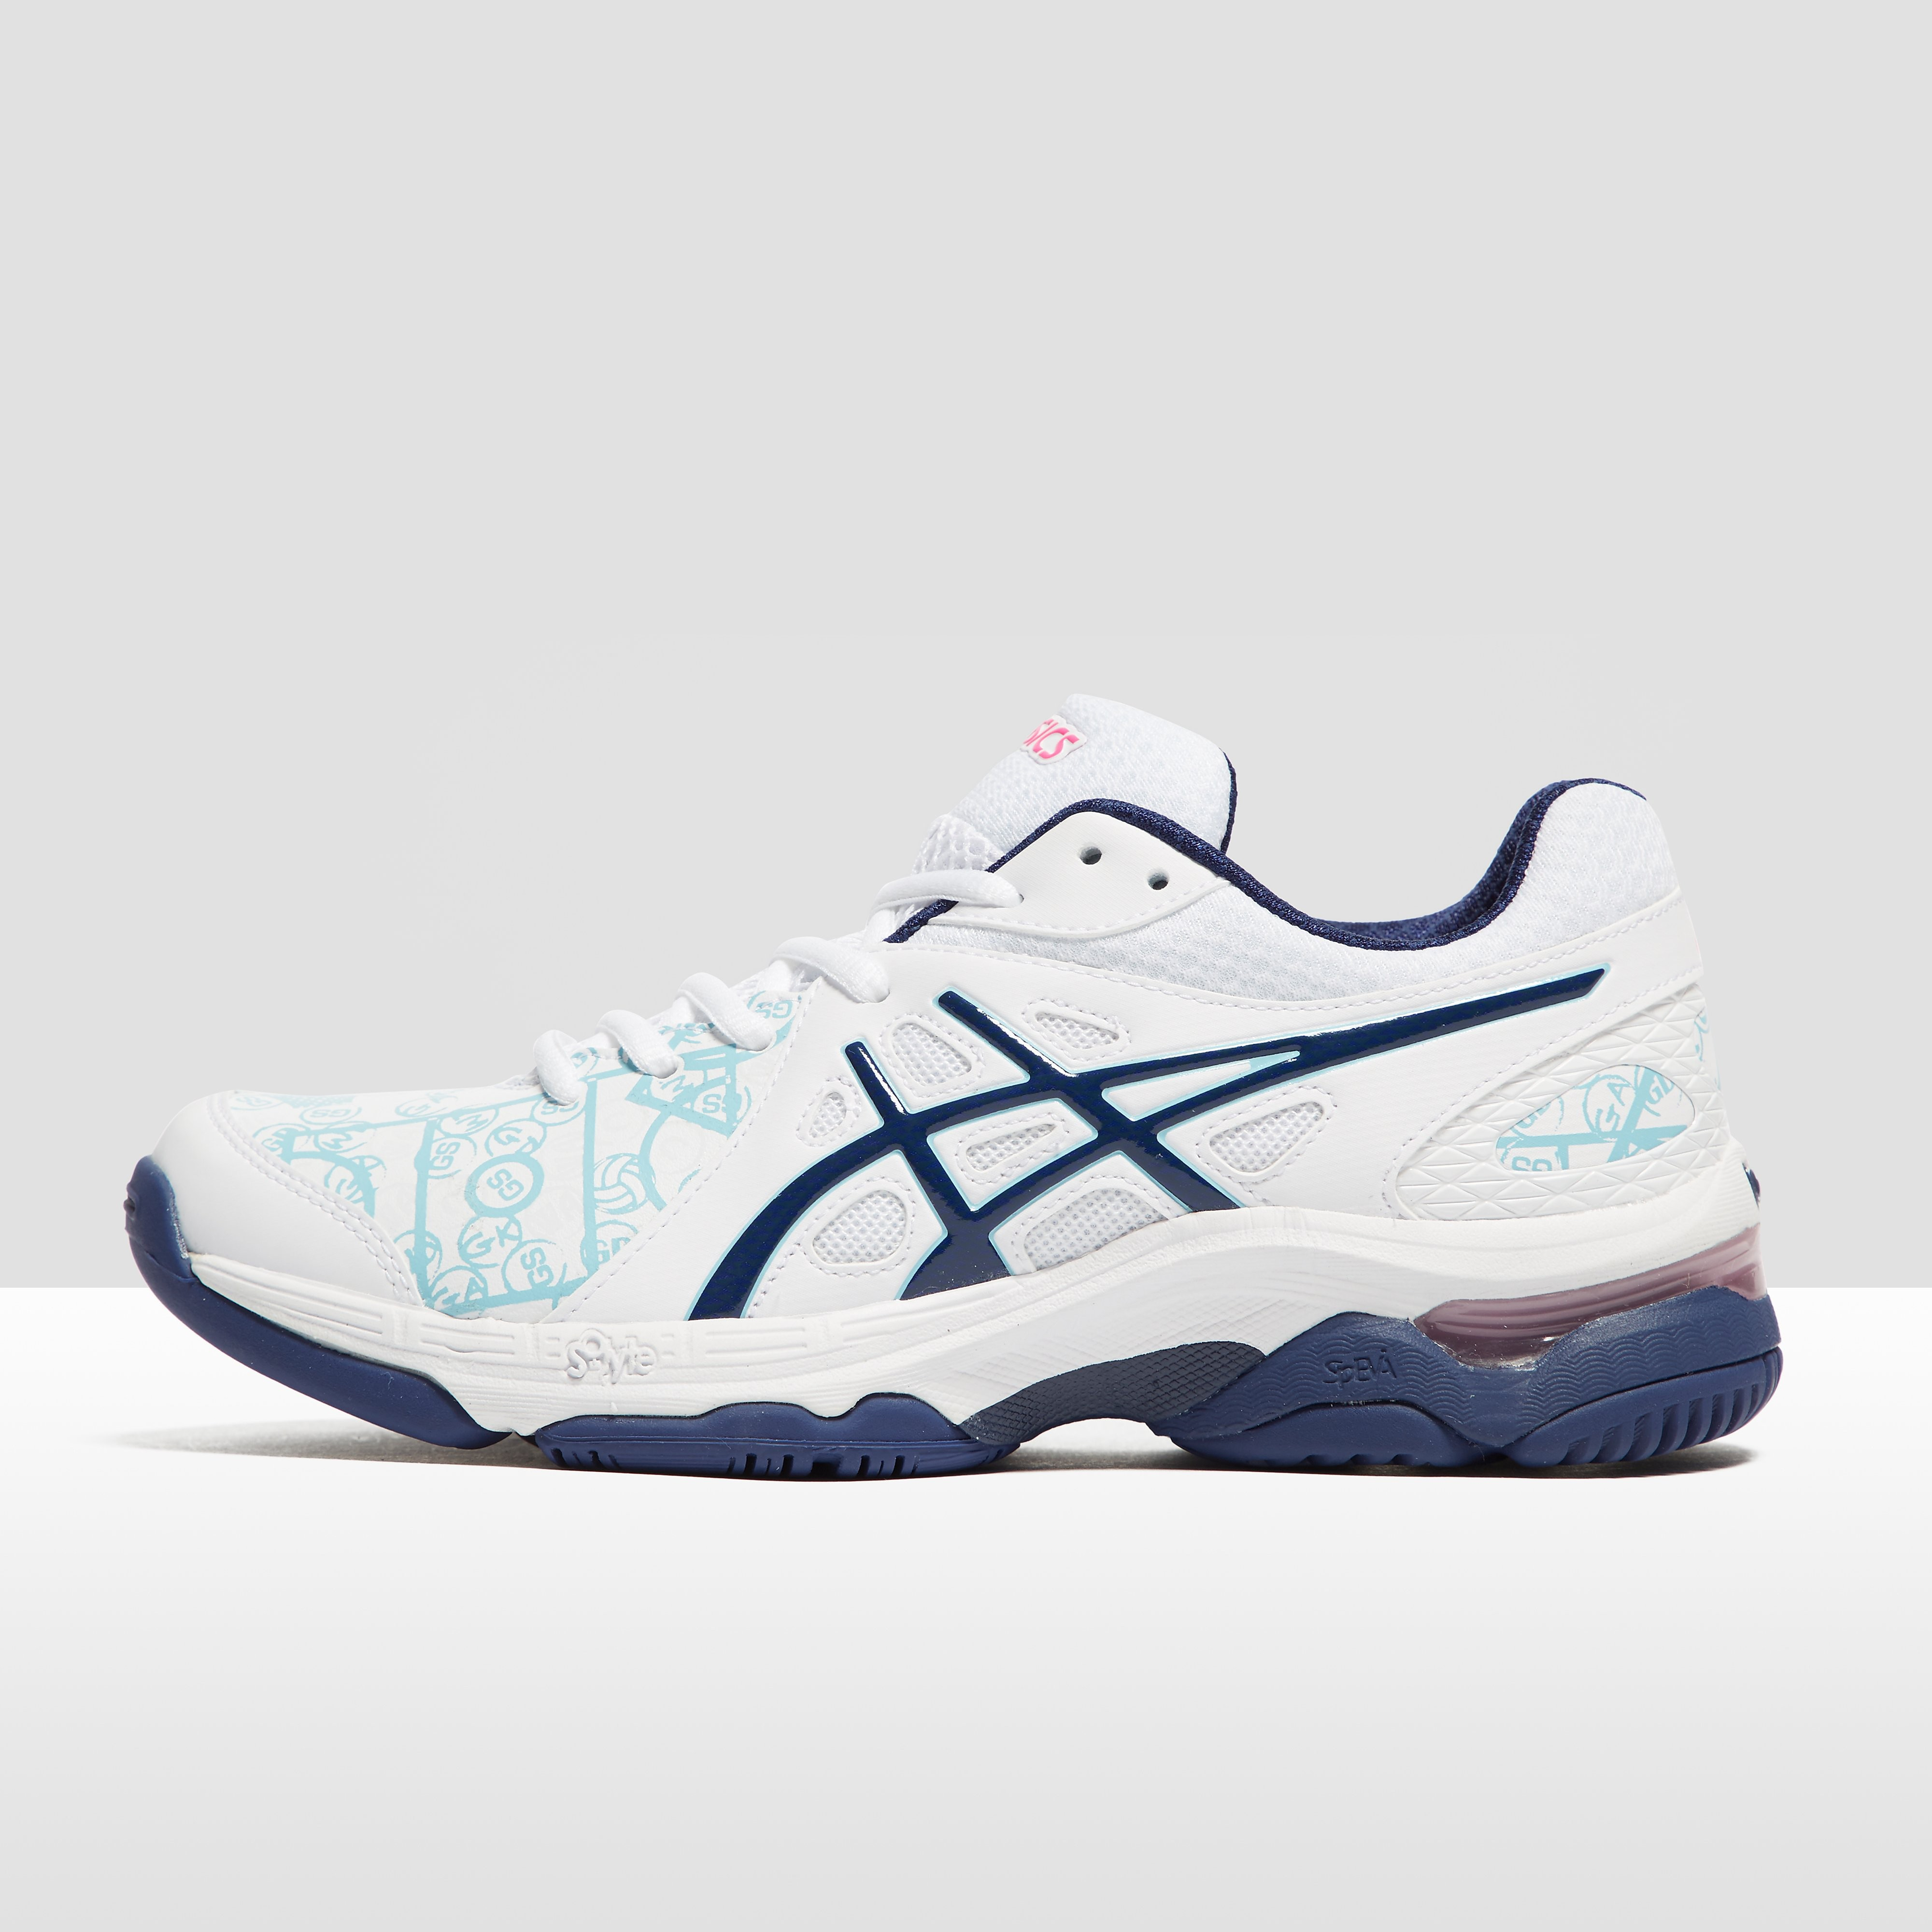 ASICS GEL-NETBURNER ACADEMY 7 WOMEN'S NETBALL SHOES